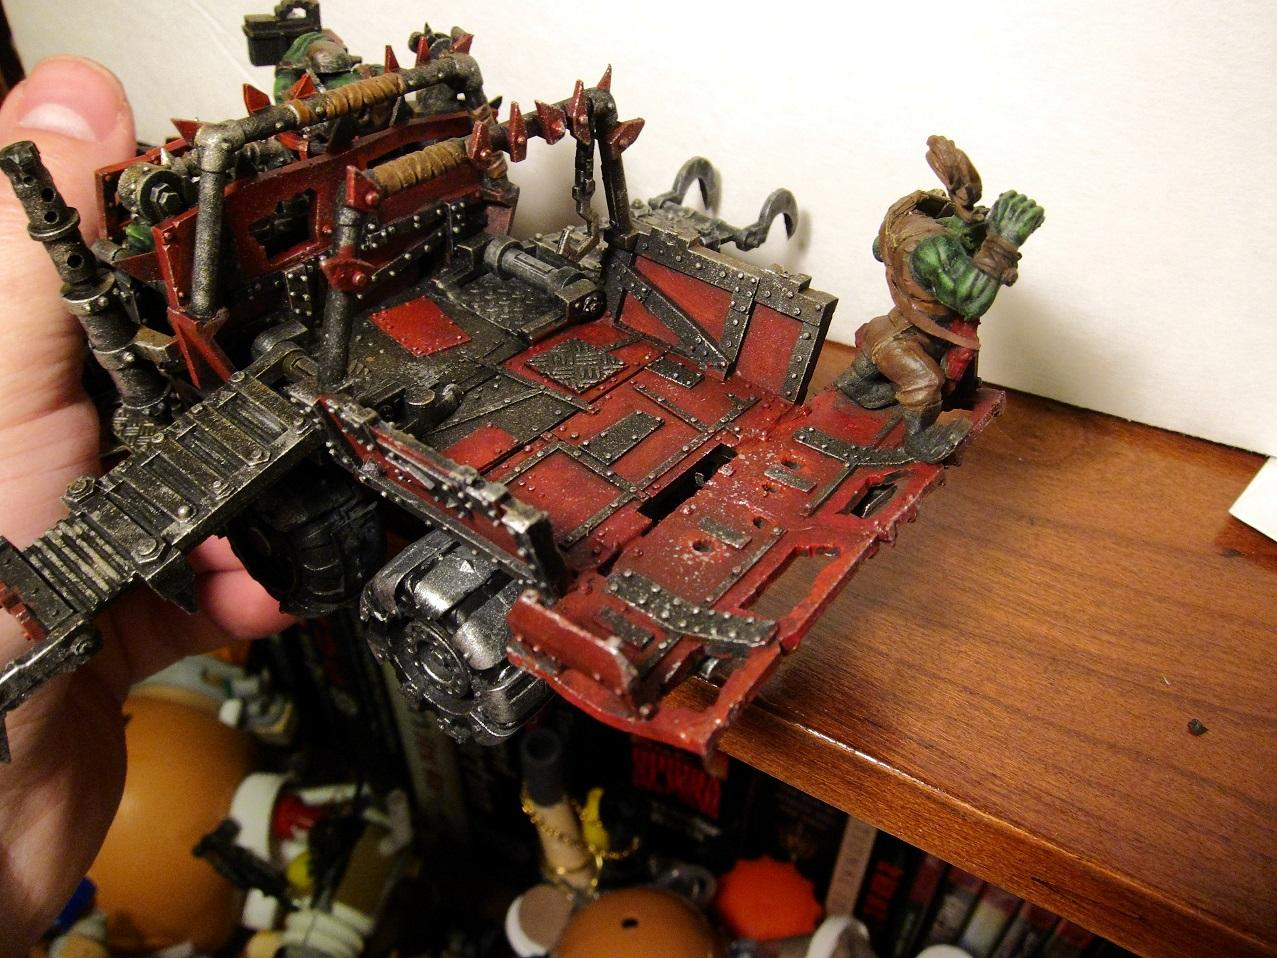 Open Topped, Ork Trukk, Ork Trukks, Orks, Trukk, Trukks, Vehicle